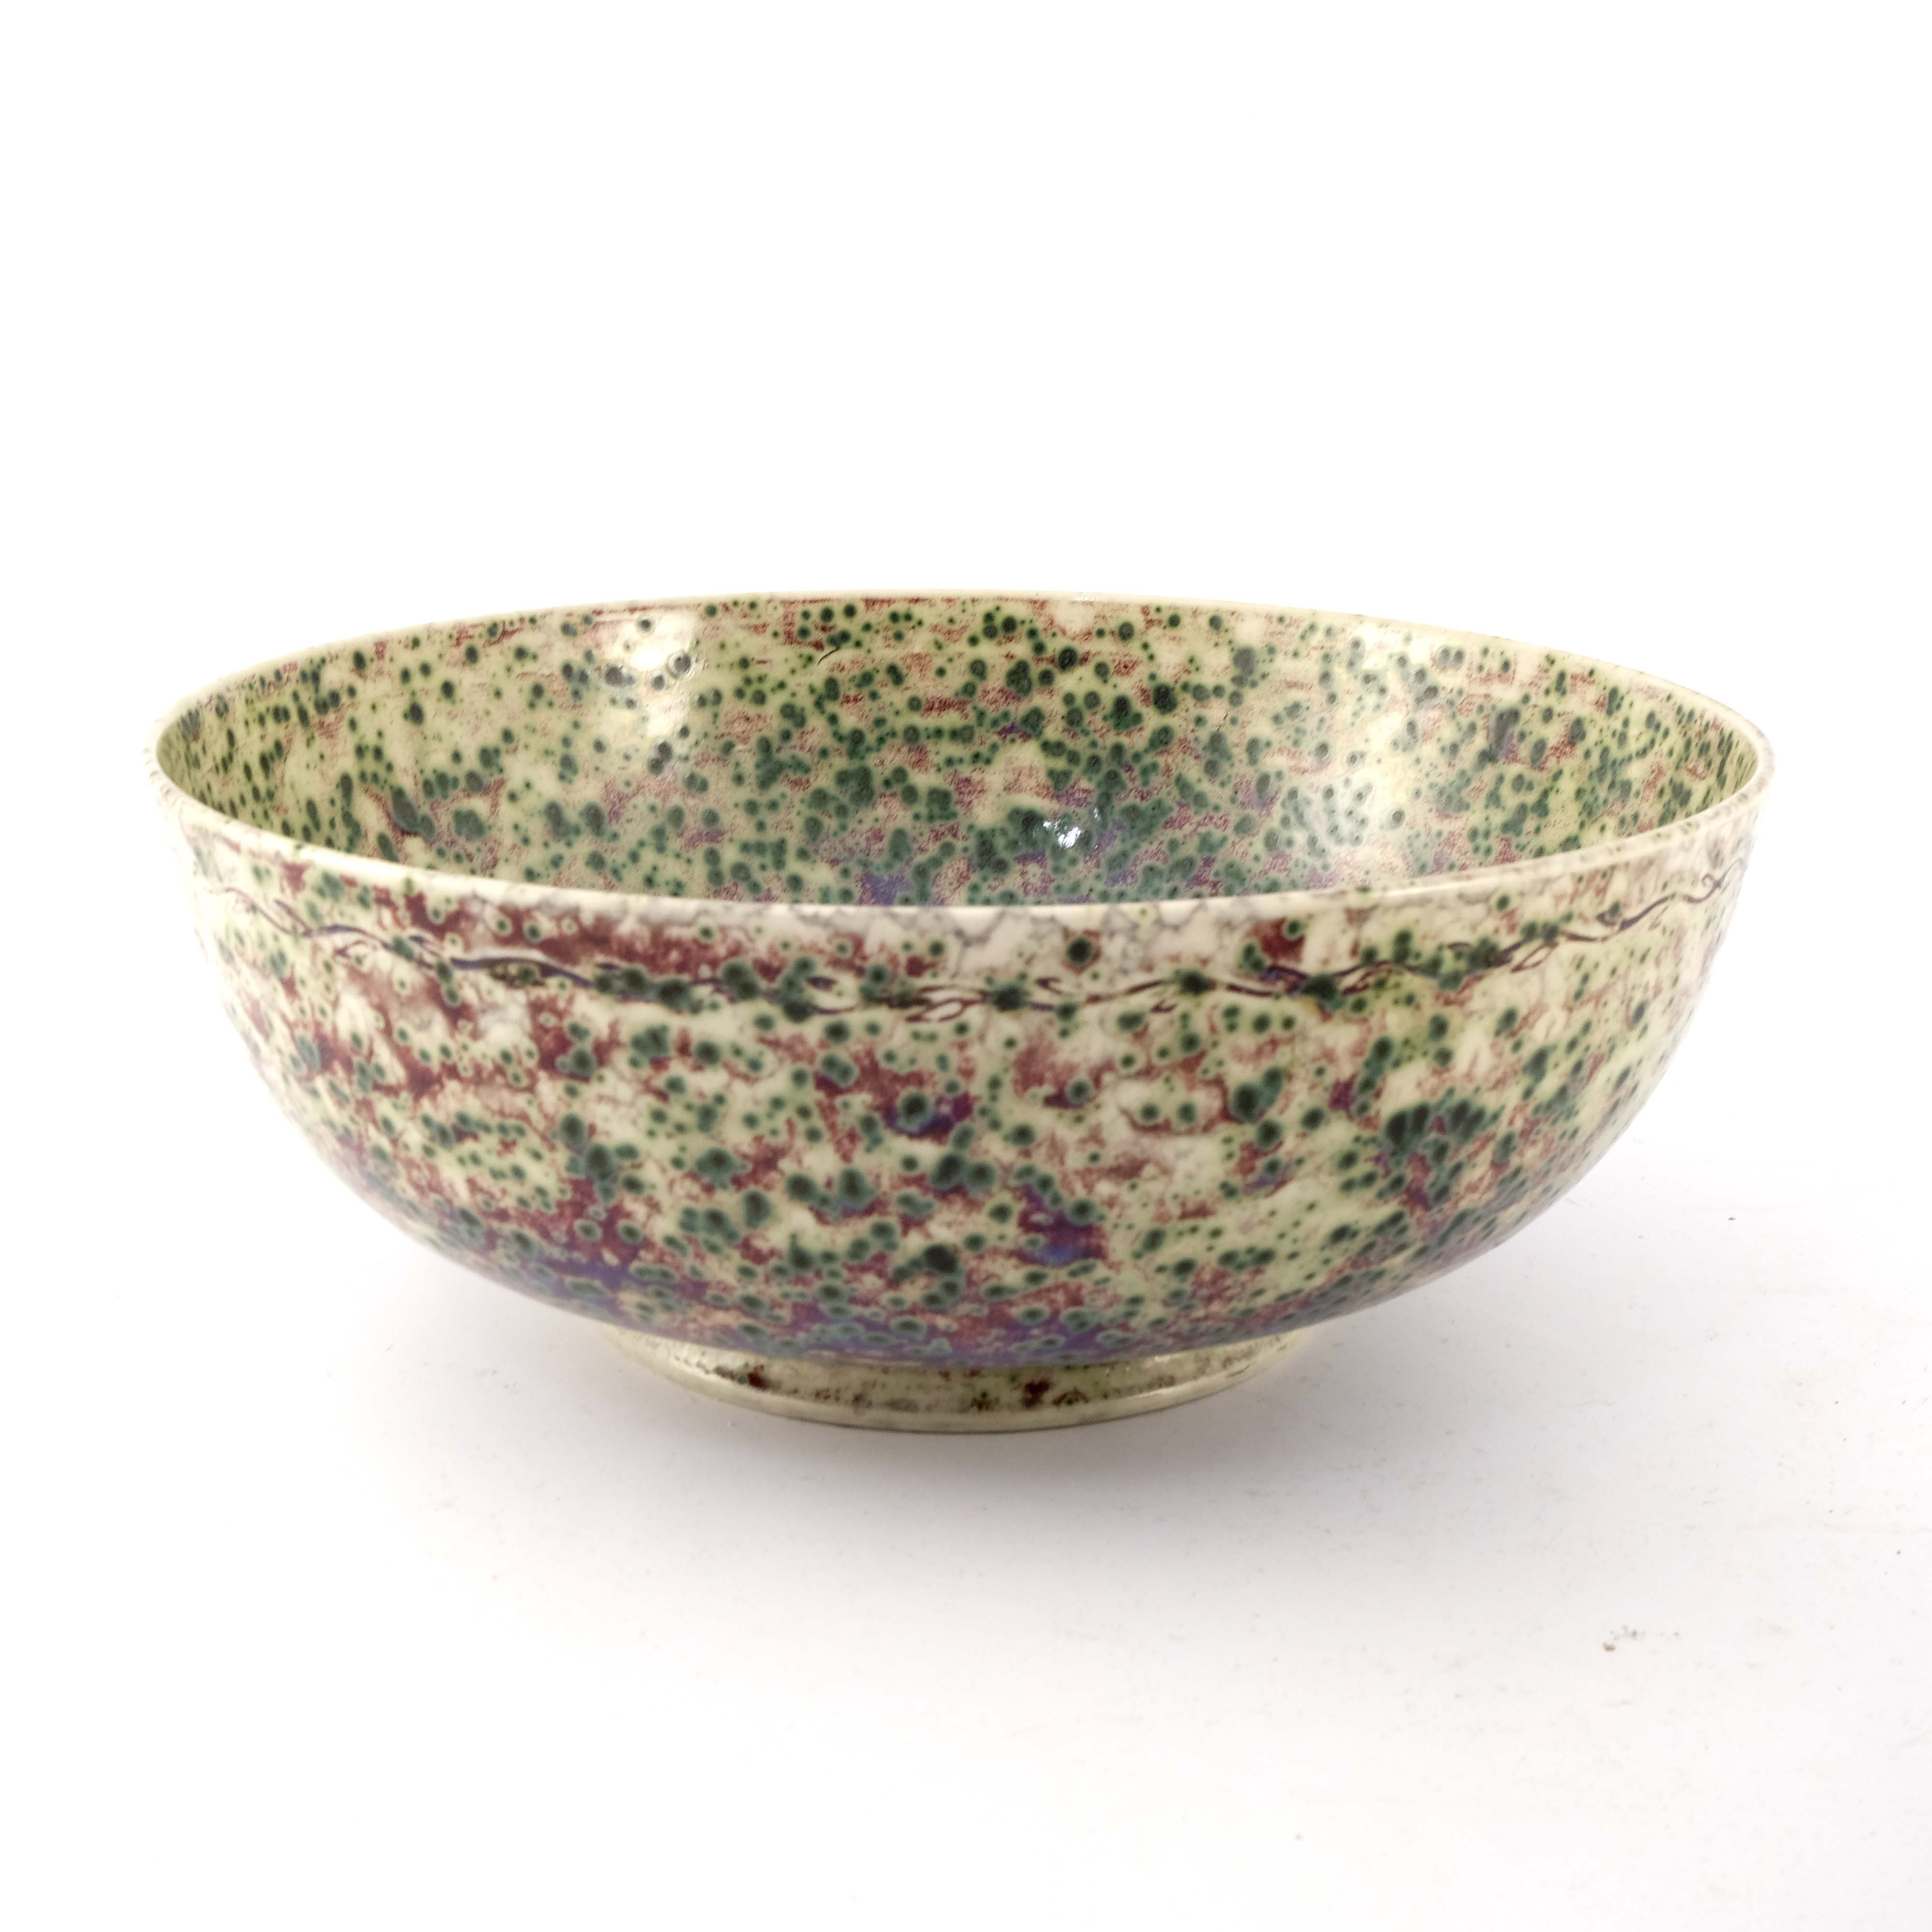 Ruskin Pottery, a High Fired bowl - Image 4 of 6